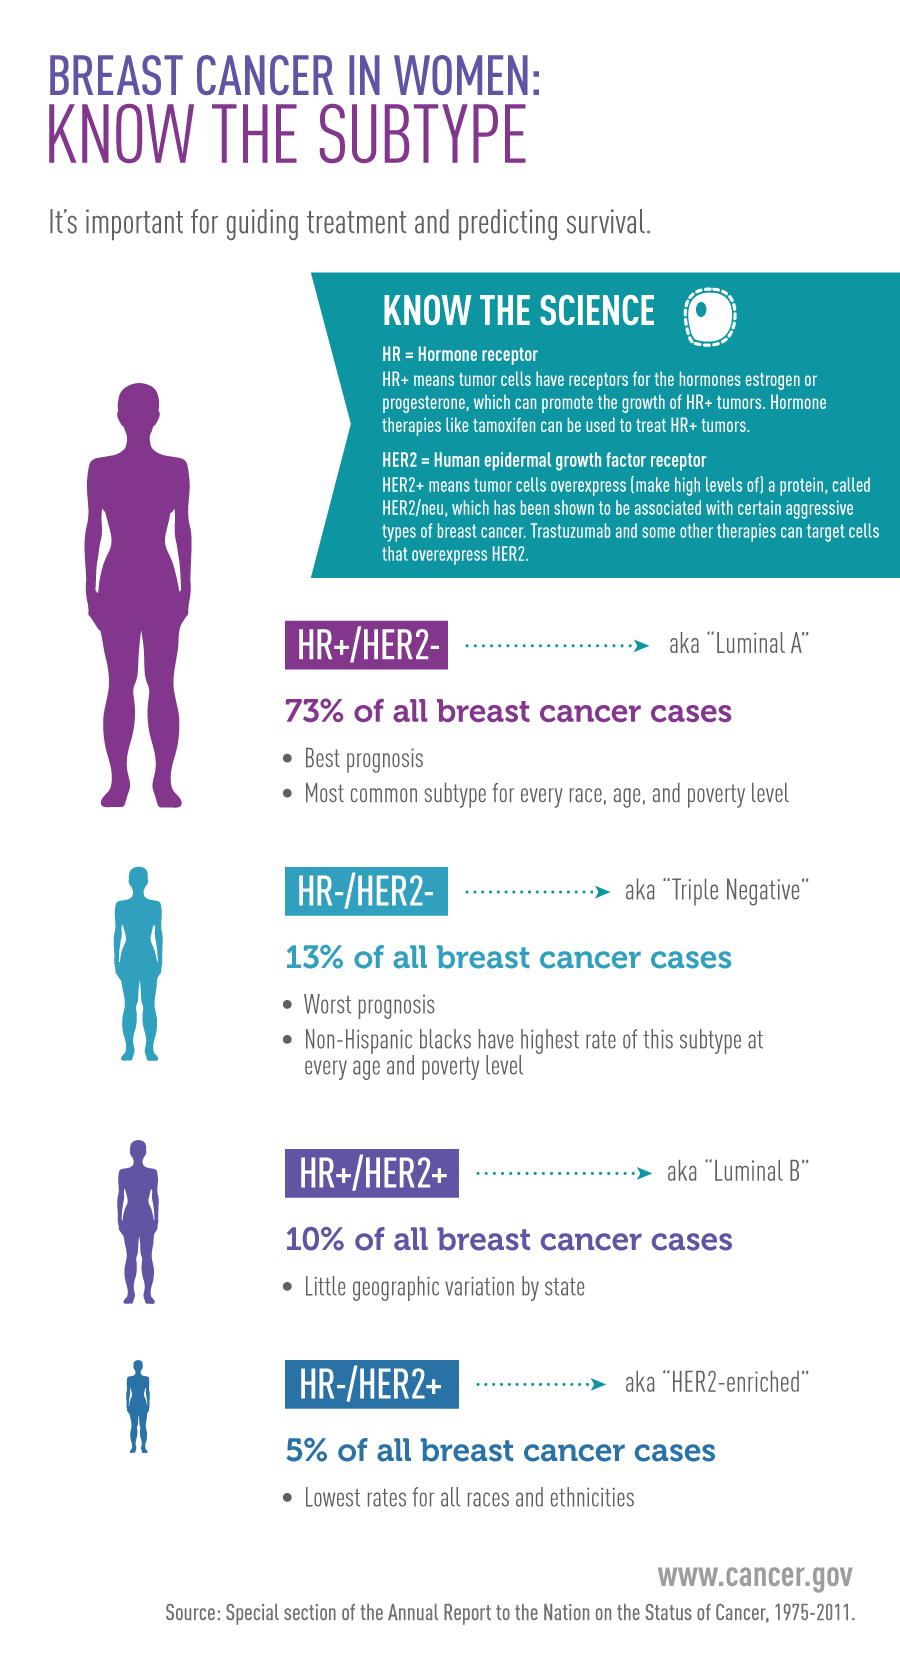 Patterns and Trends in Cancer Screening in the United States